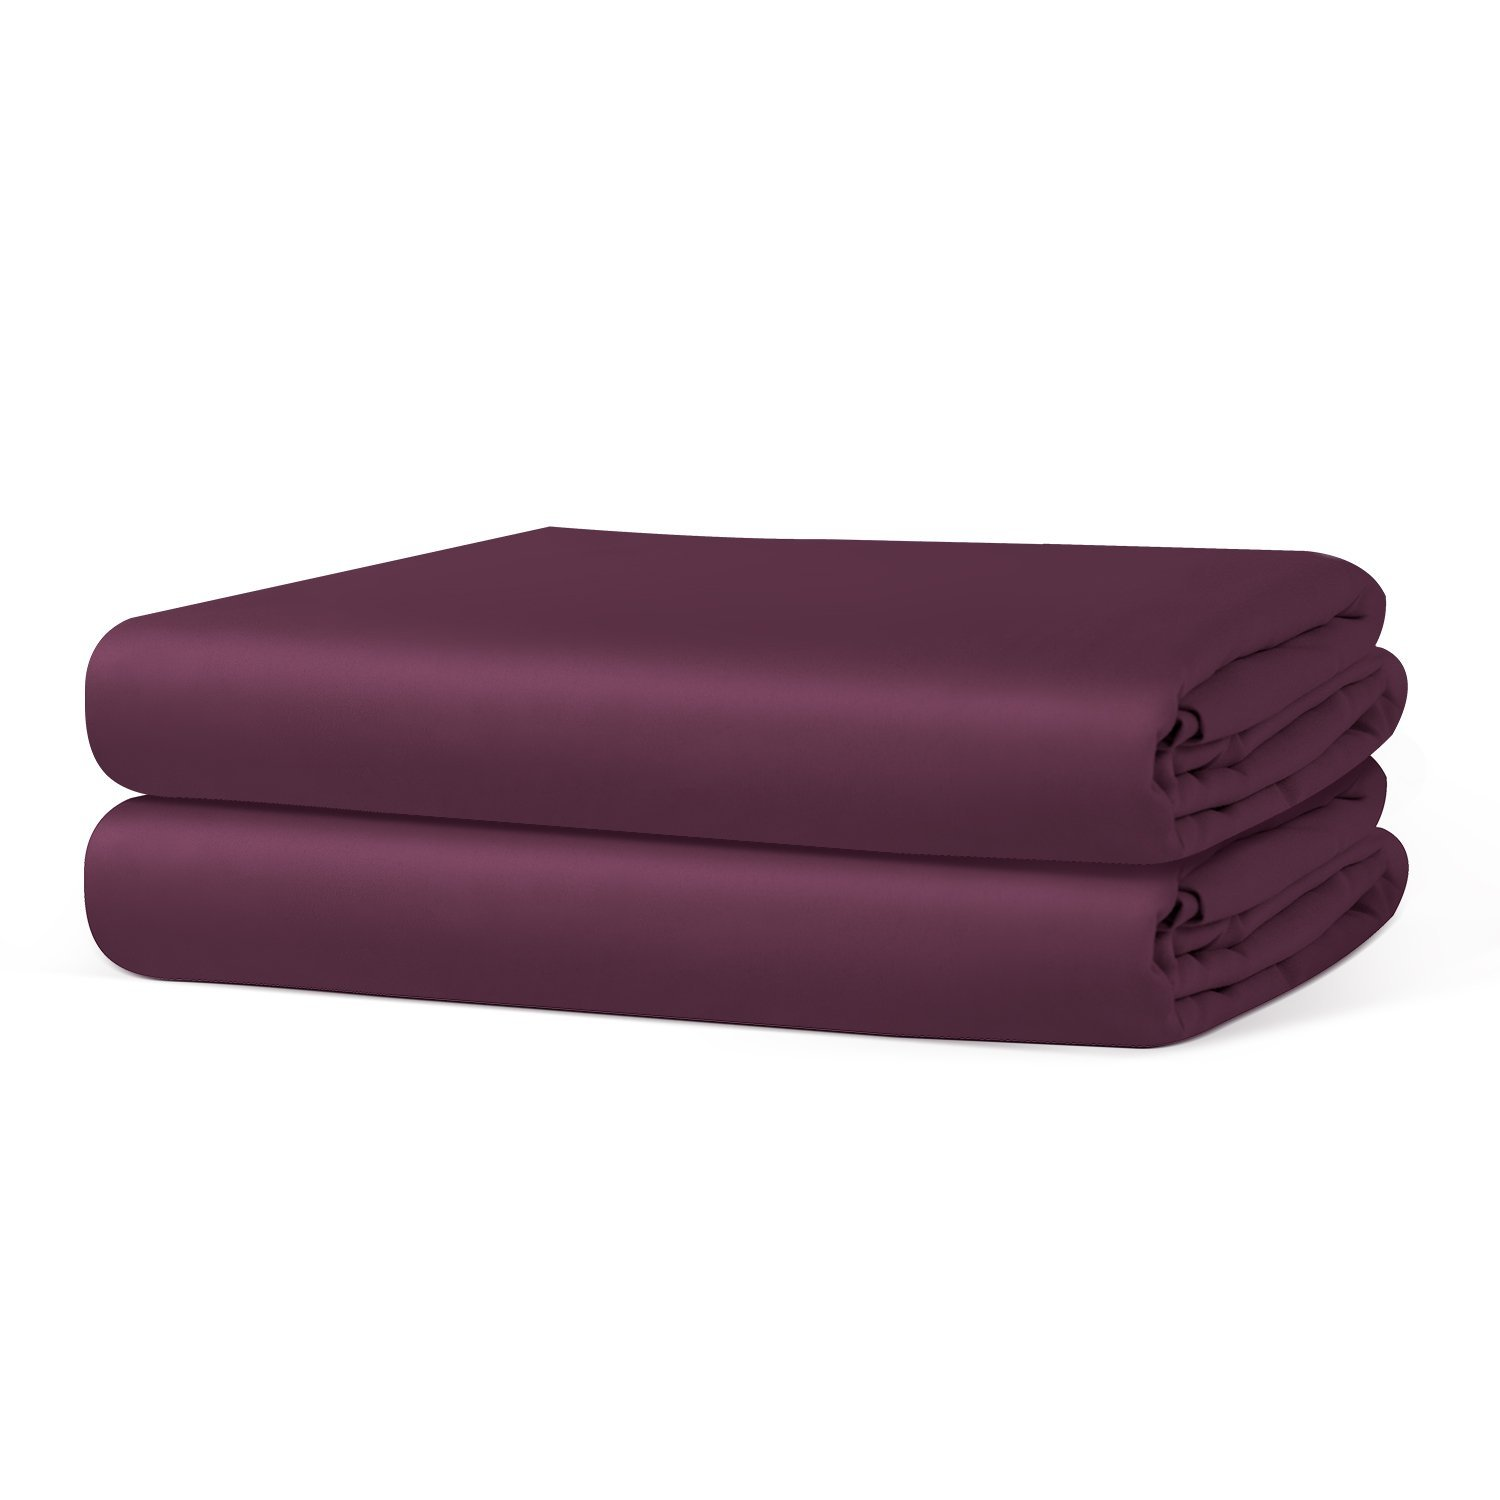 Fitted Sheet (2-Pack) - Soft-Brushed Microfiber with Deep Pocket - Purple